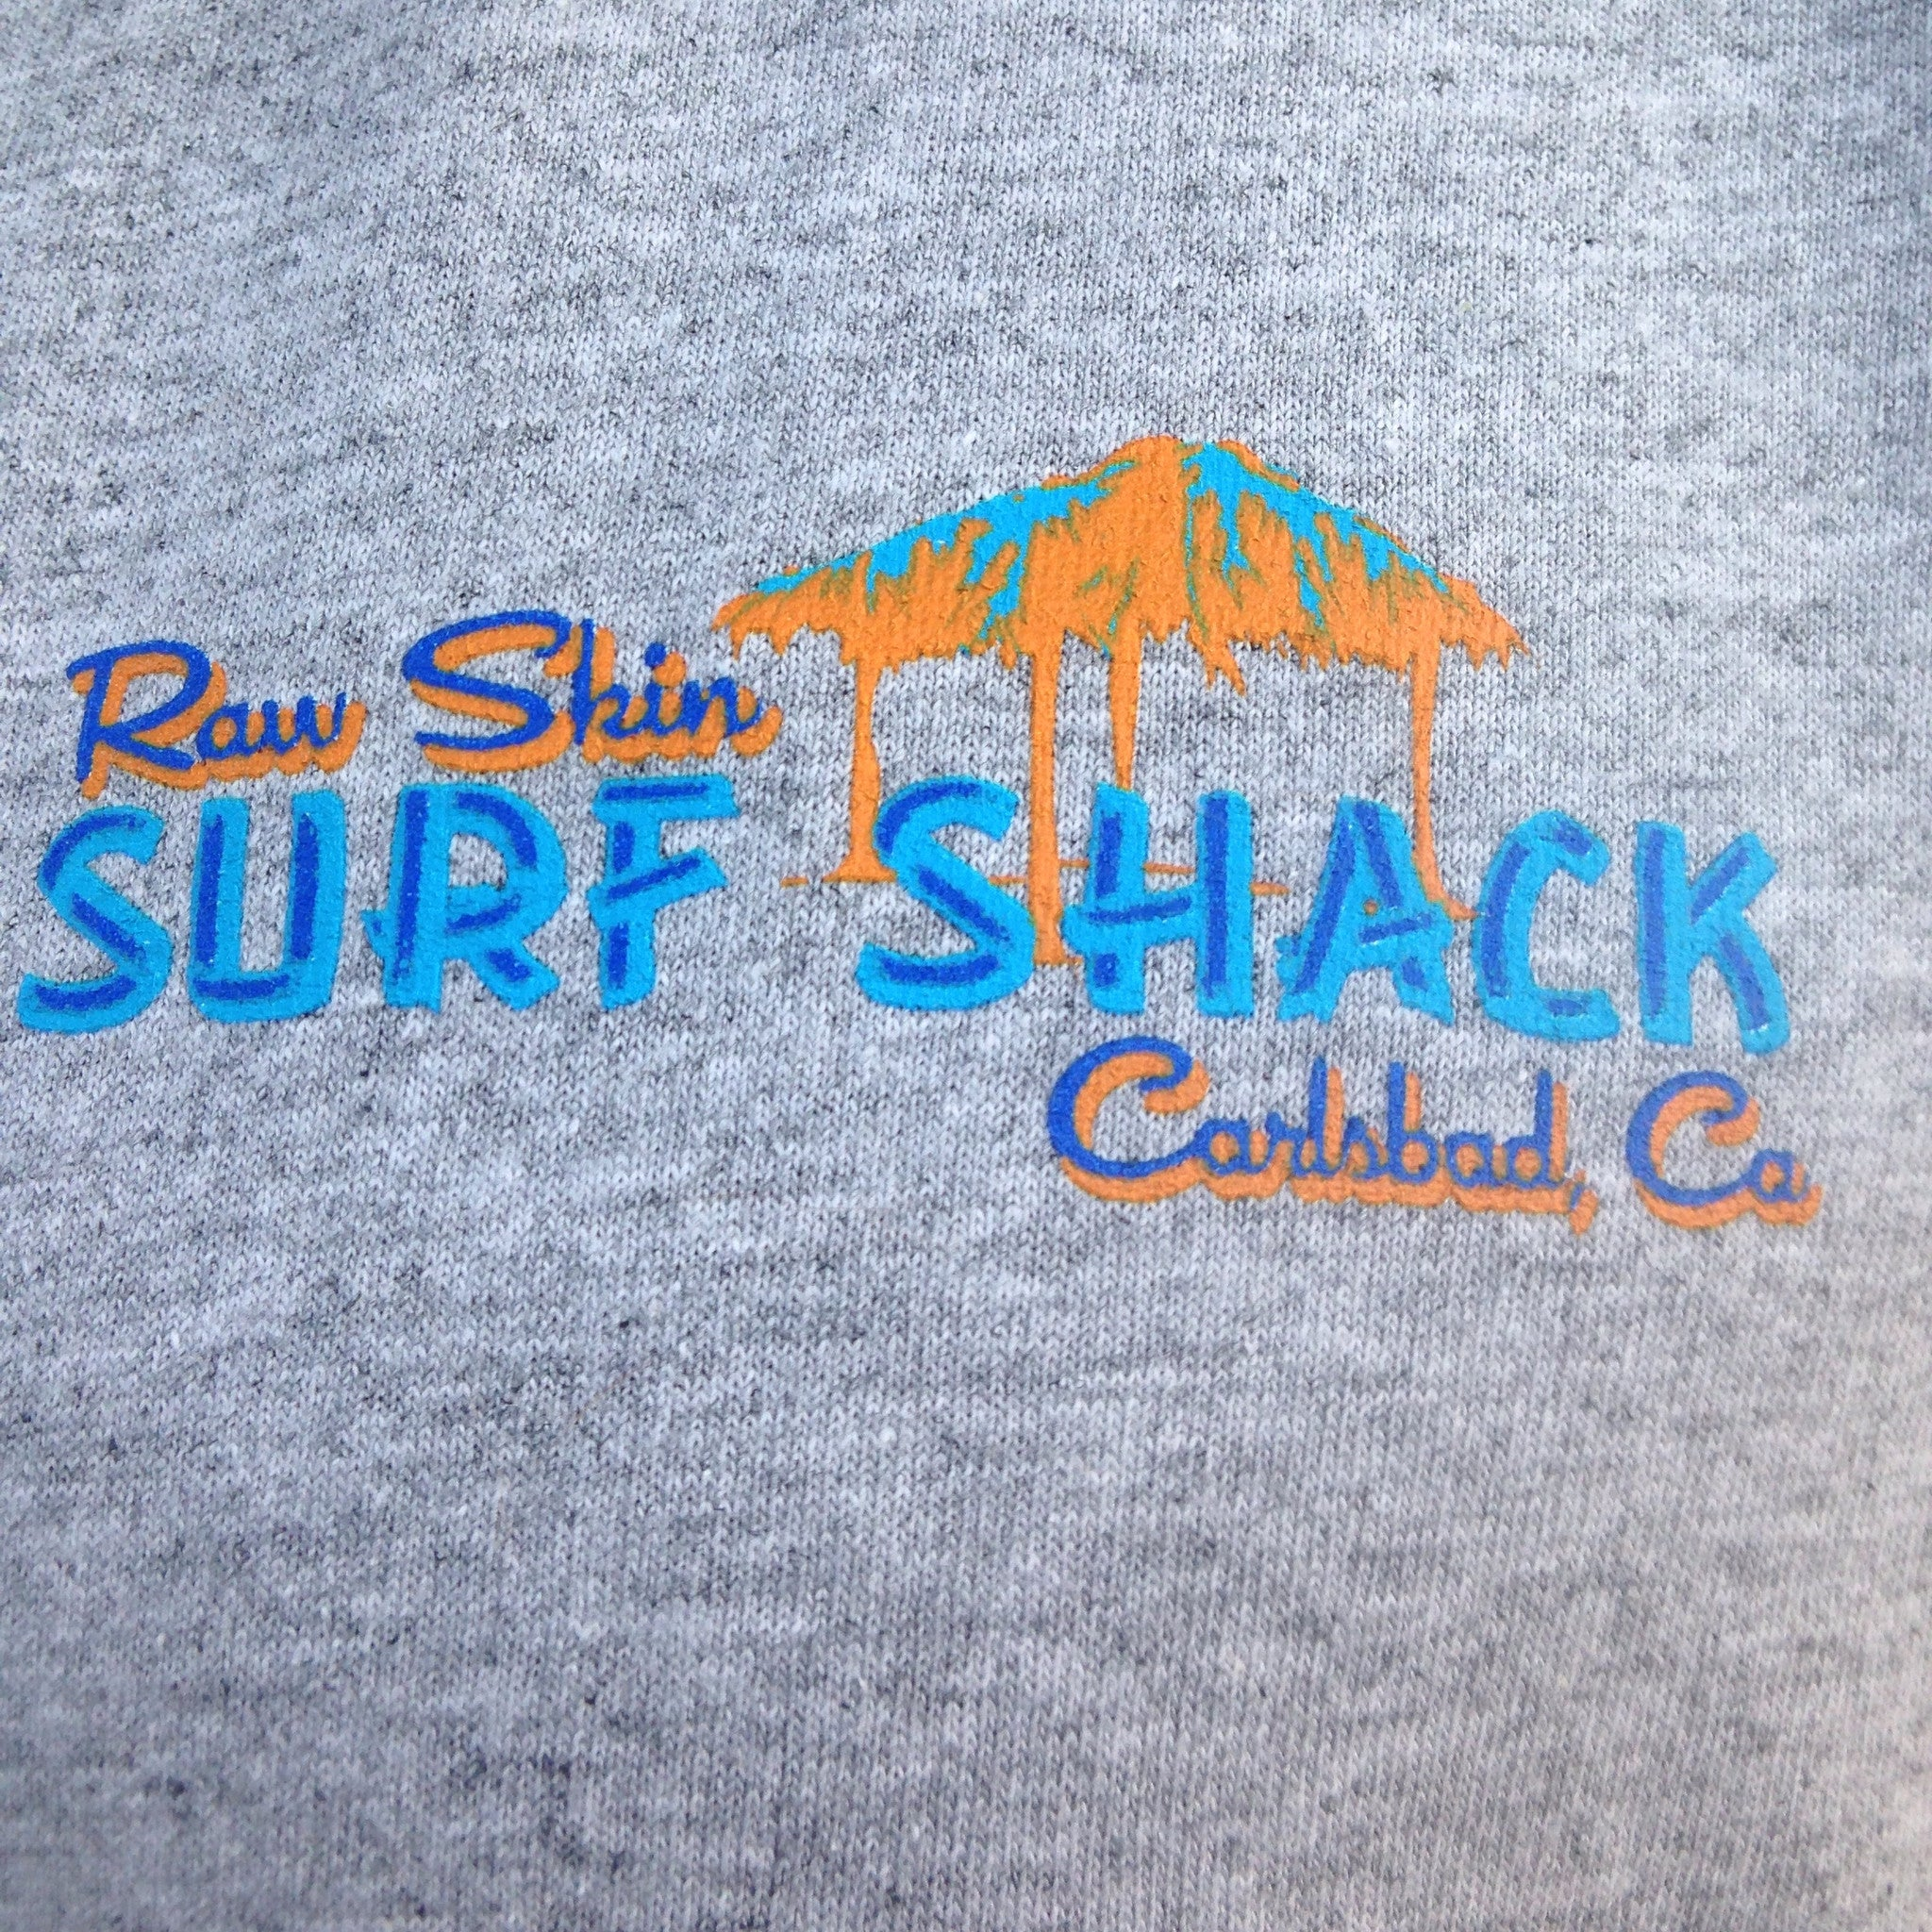 Mens Cat in the Shack T-shirt - Raw Skin Surf Shack